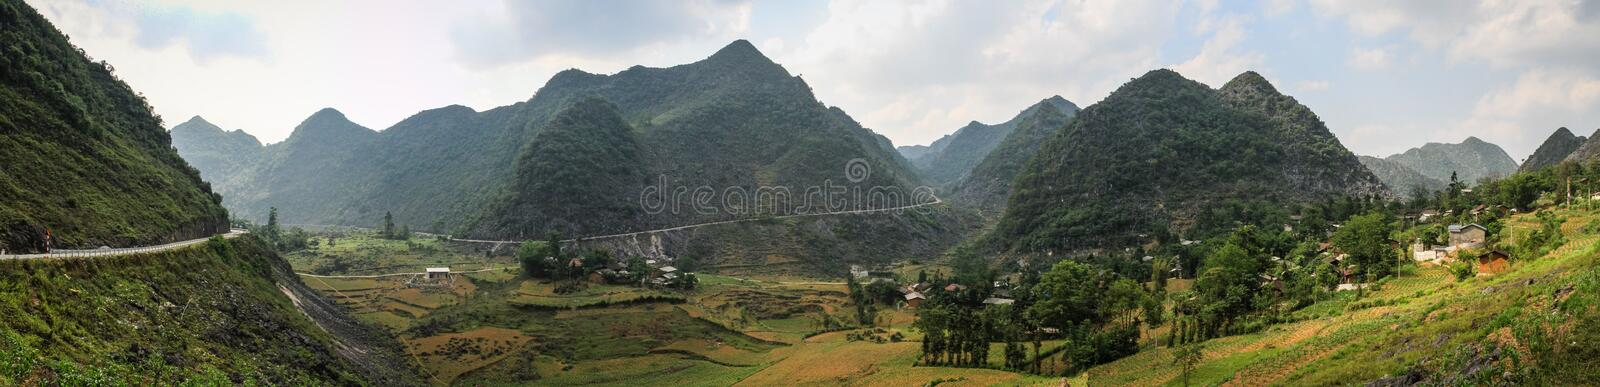 Panoramic view on the majestic mountains around Meo Vac, Ha Giang Province, Vietnam stock photo